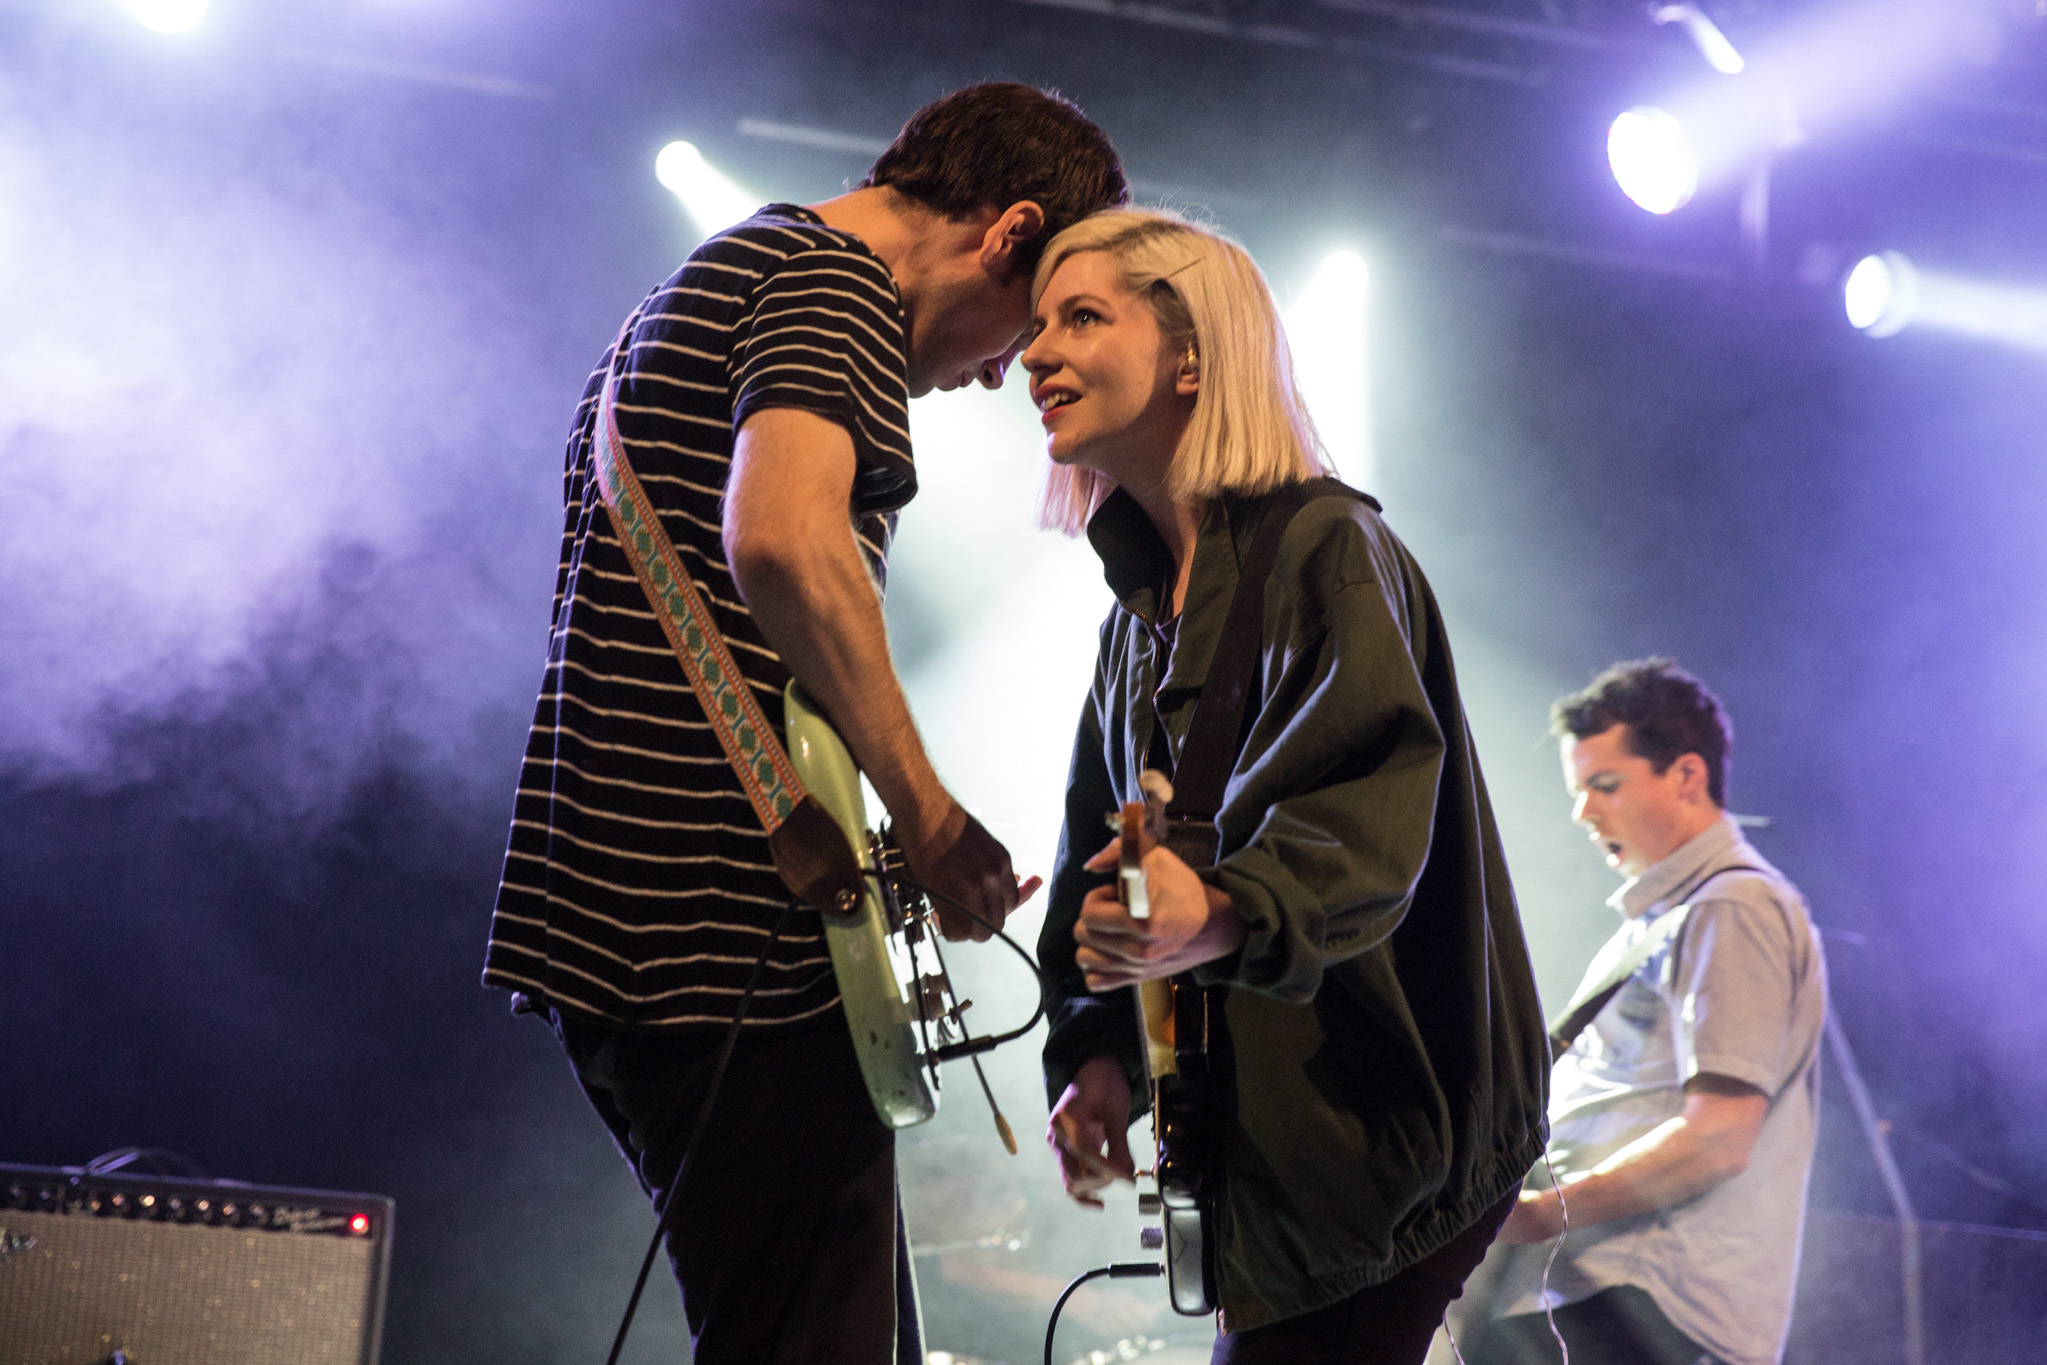 Alvvays bring new airings and ballroom dancing to Reading 2015